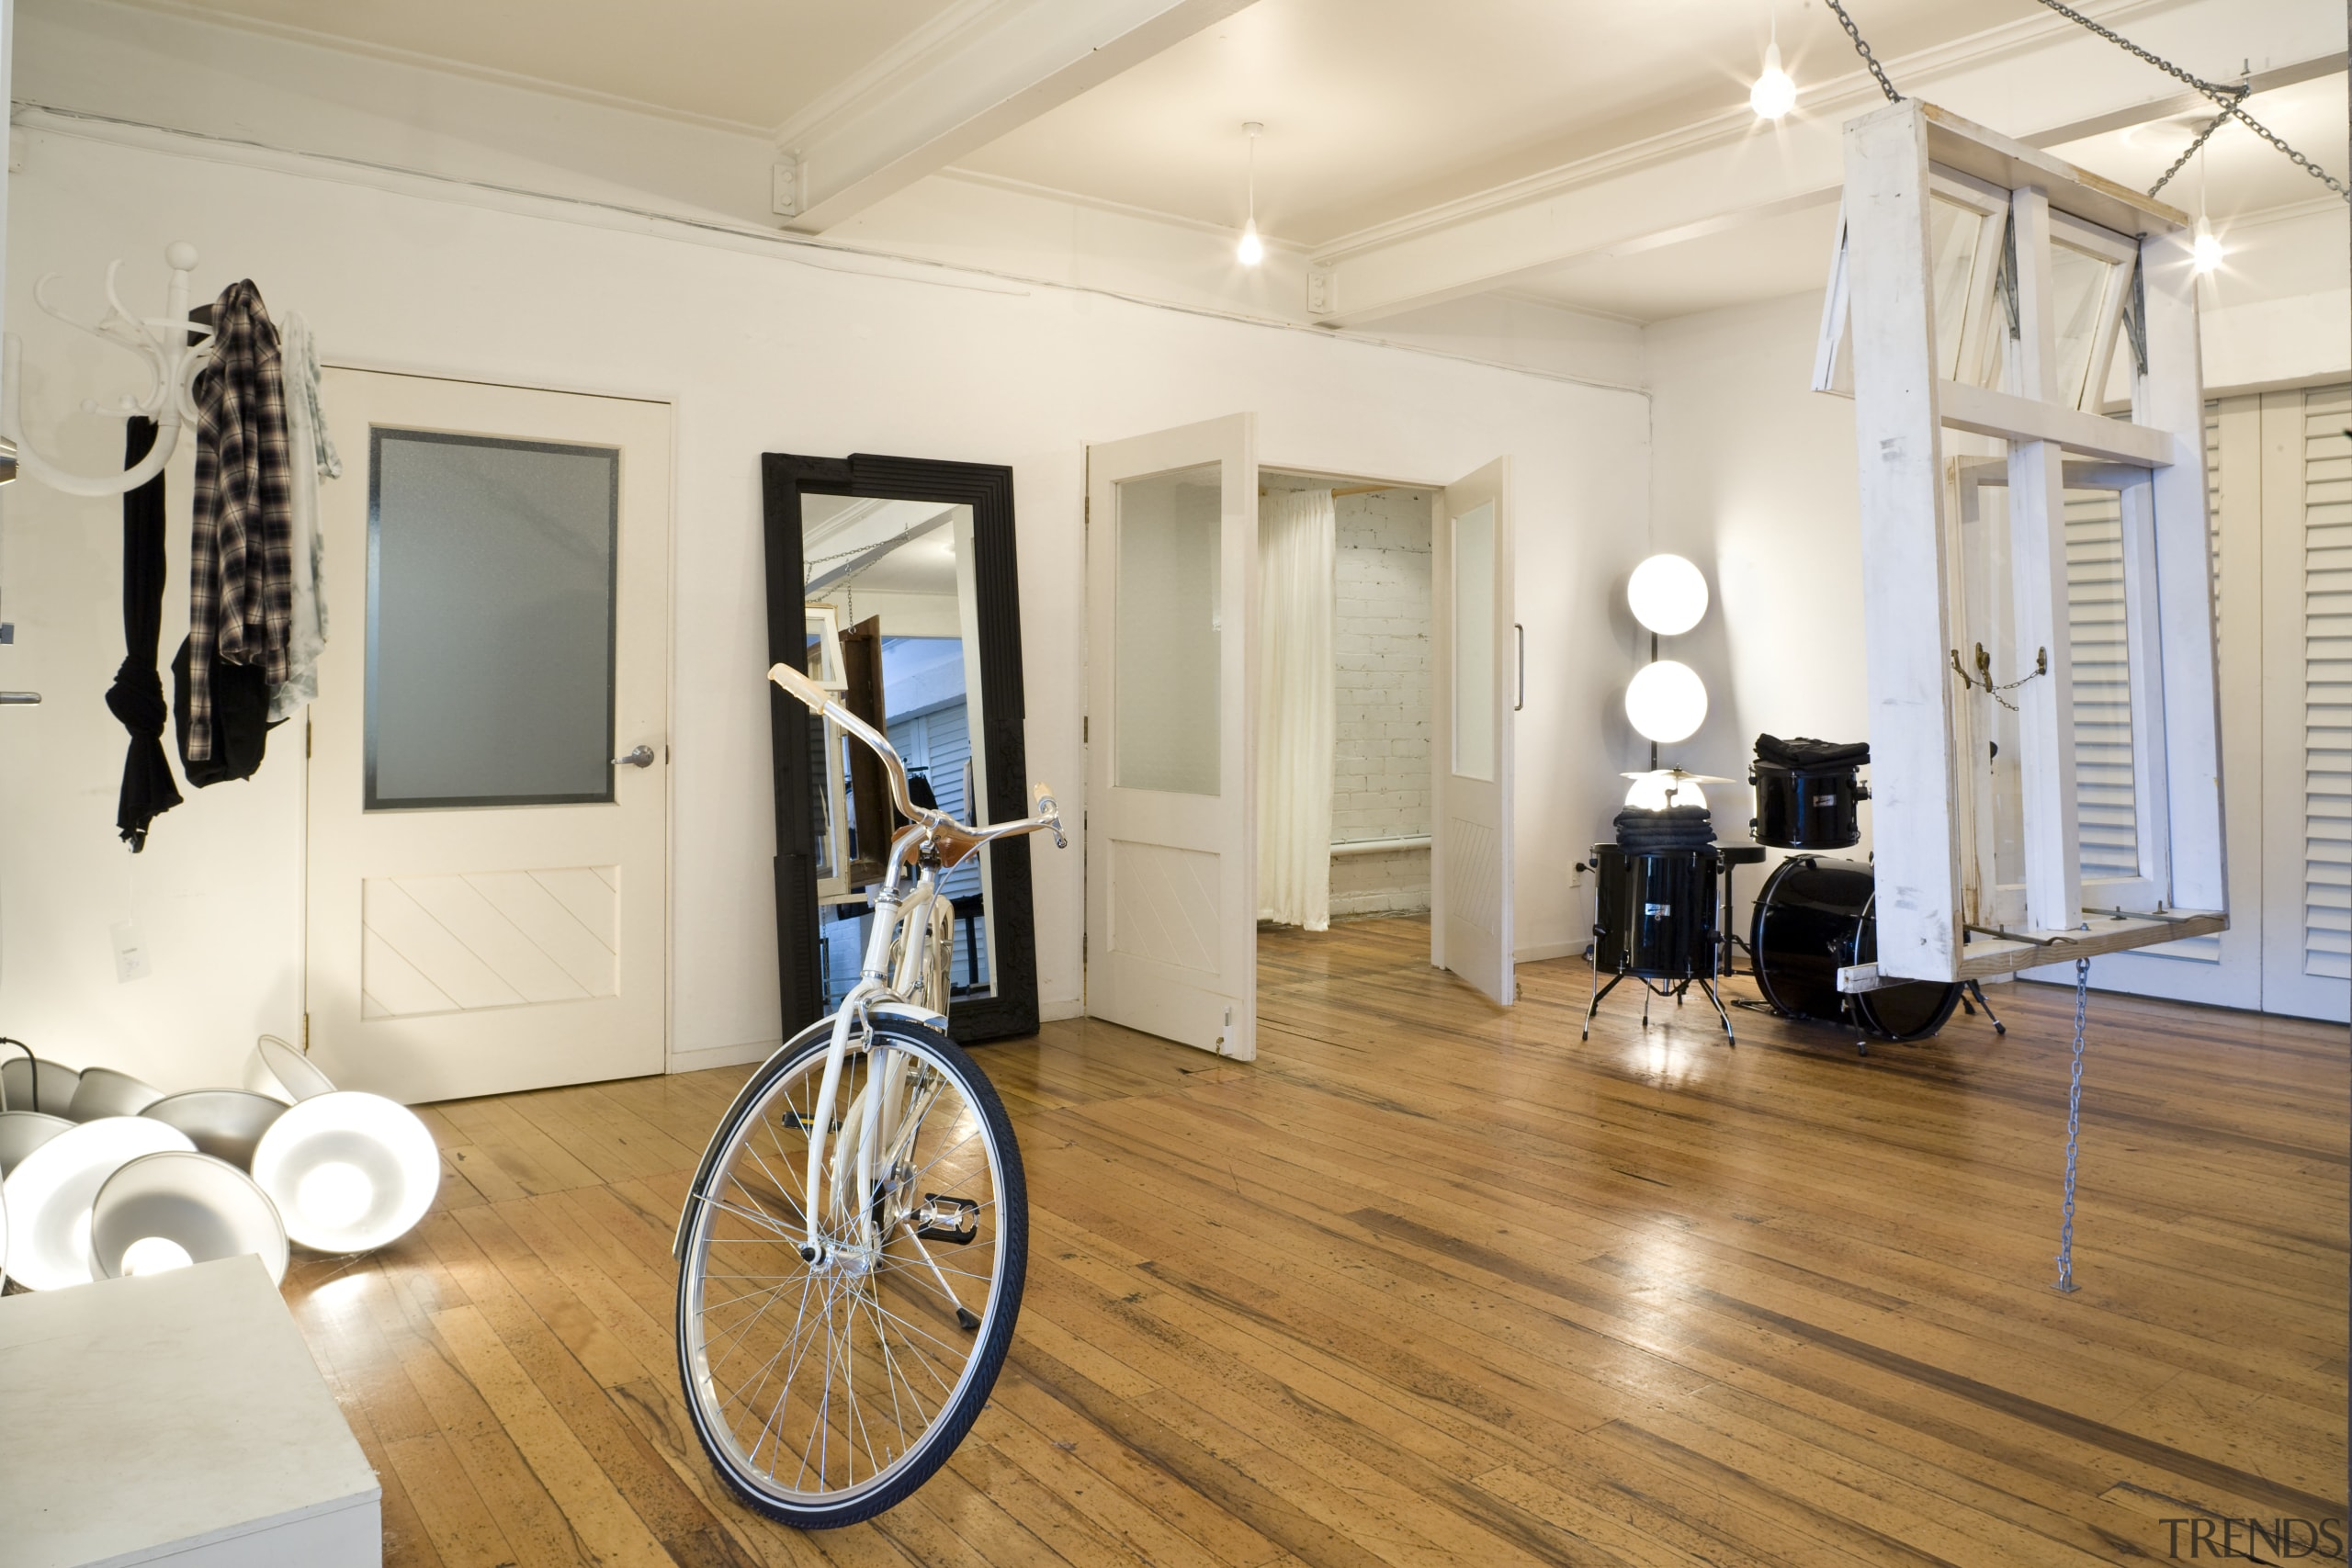 Interior view of the clothing displays at the floor, flooring, hardwood, home, interior design, laminate flooring, room, wood, wood flooring, white